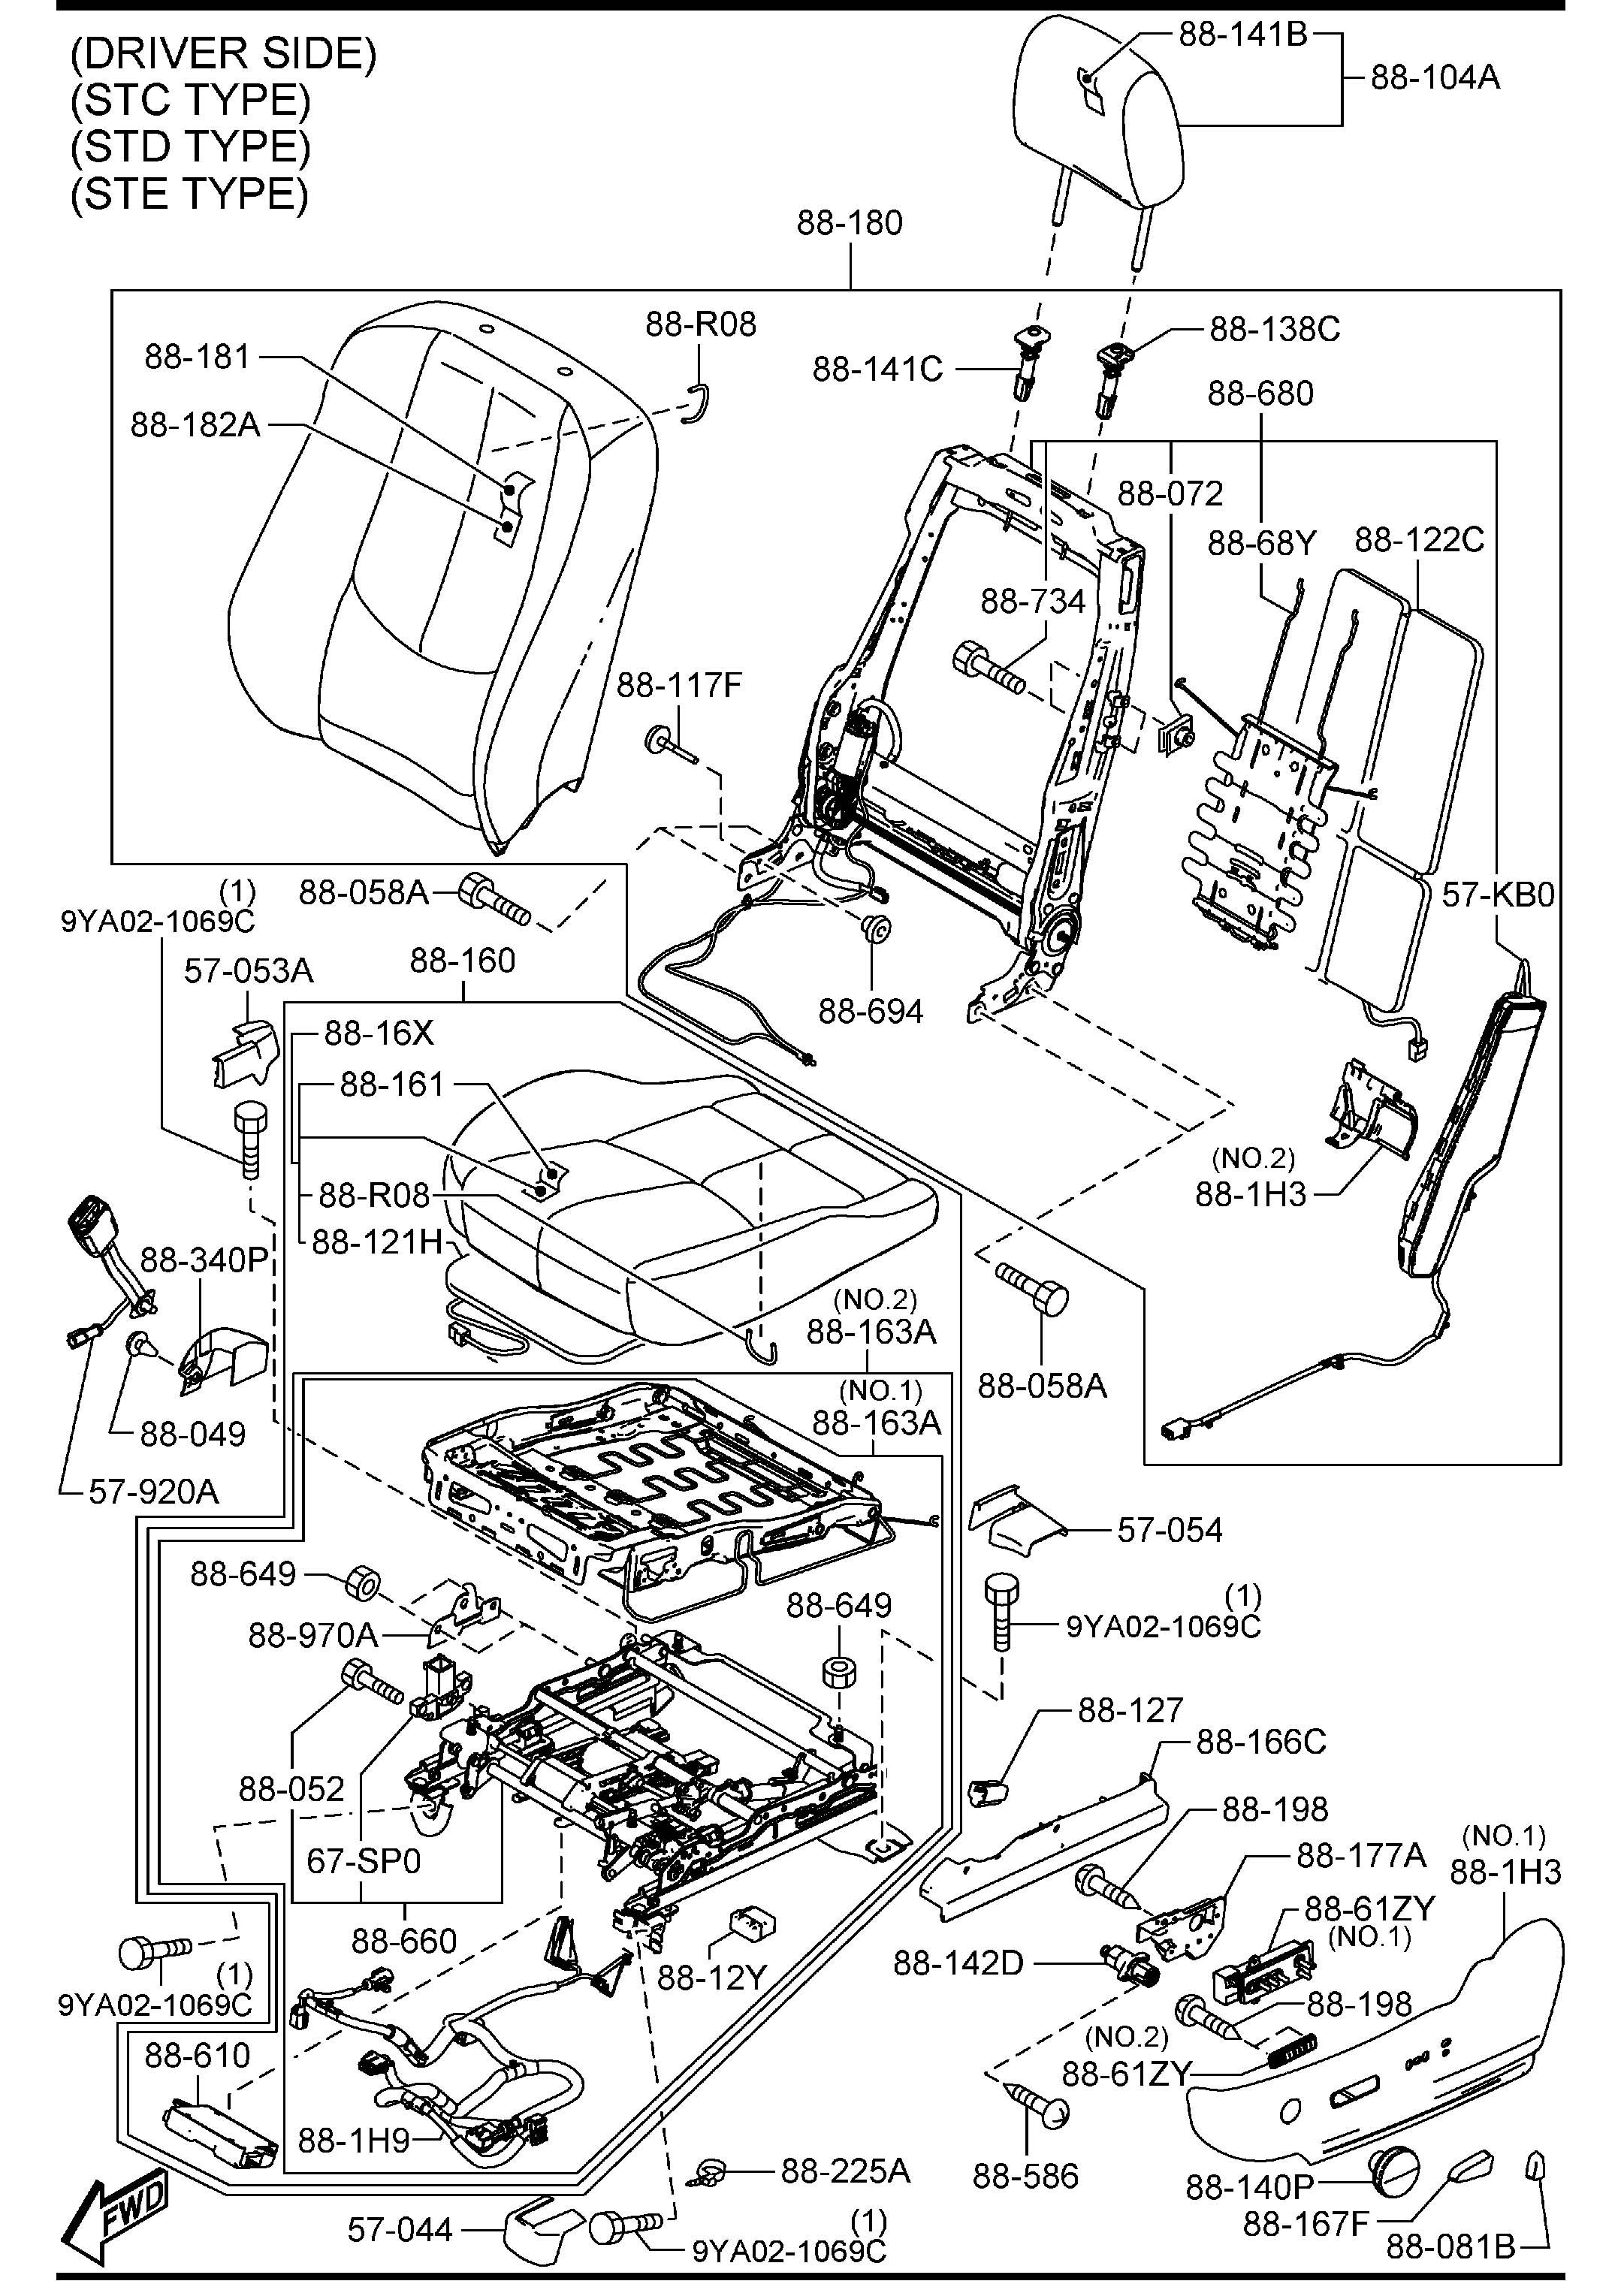 Vwvortex diy heated seats for cars not pre wired k5 ideas pinterest cars dream cars and vw